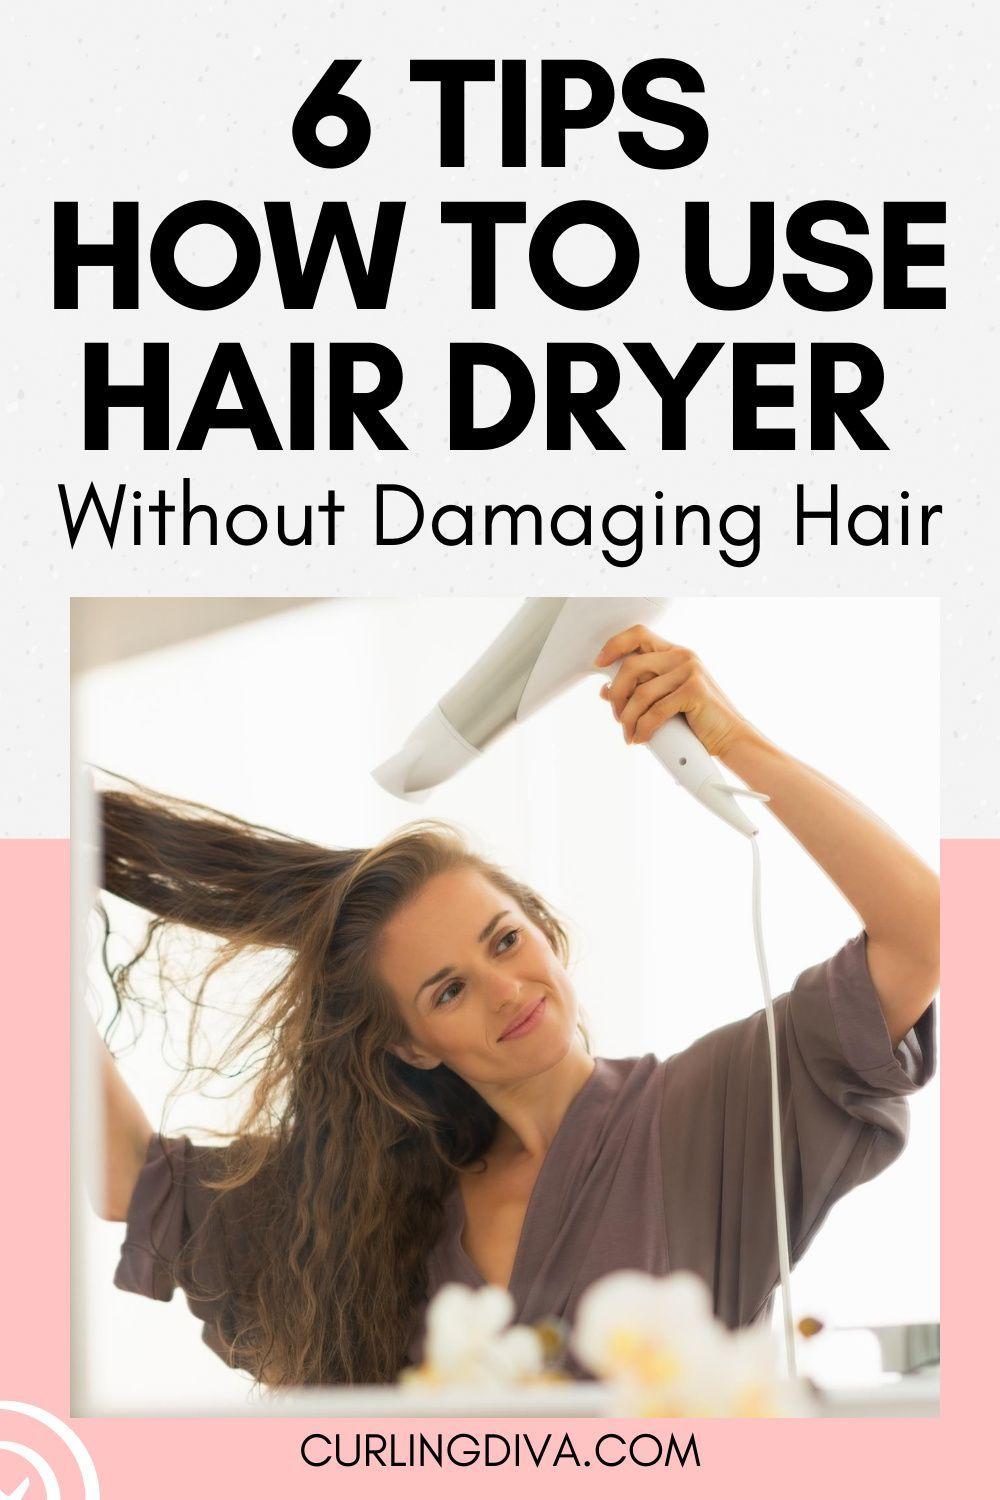 How To Use Hair Dryer Without Damaging Hair In 2020 Damaged Hair Best Hair Dryer Dry Curly Hair